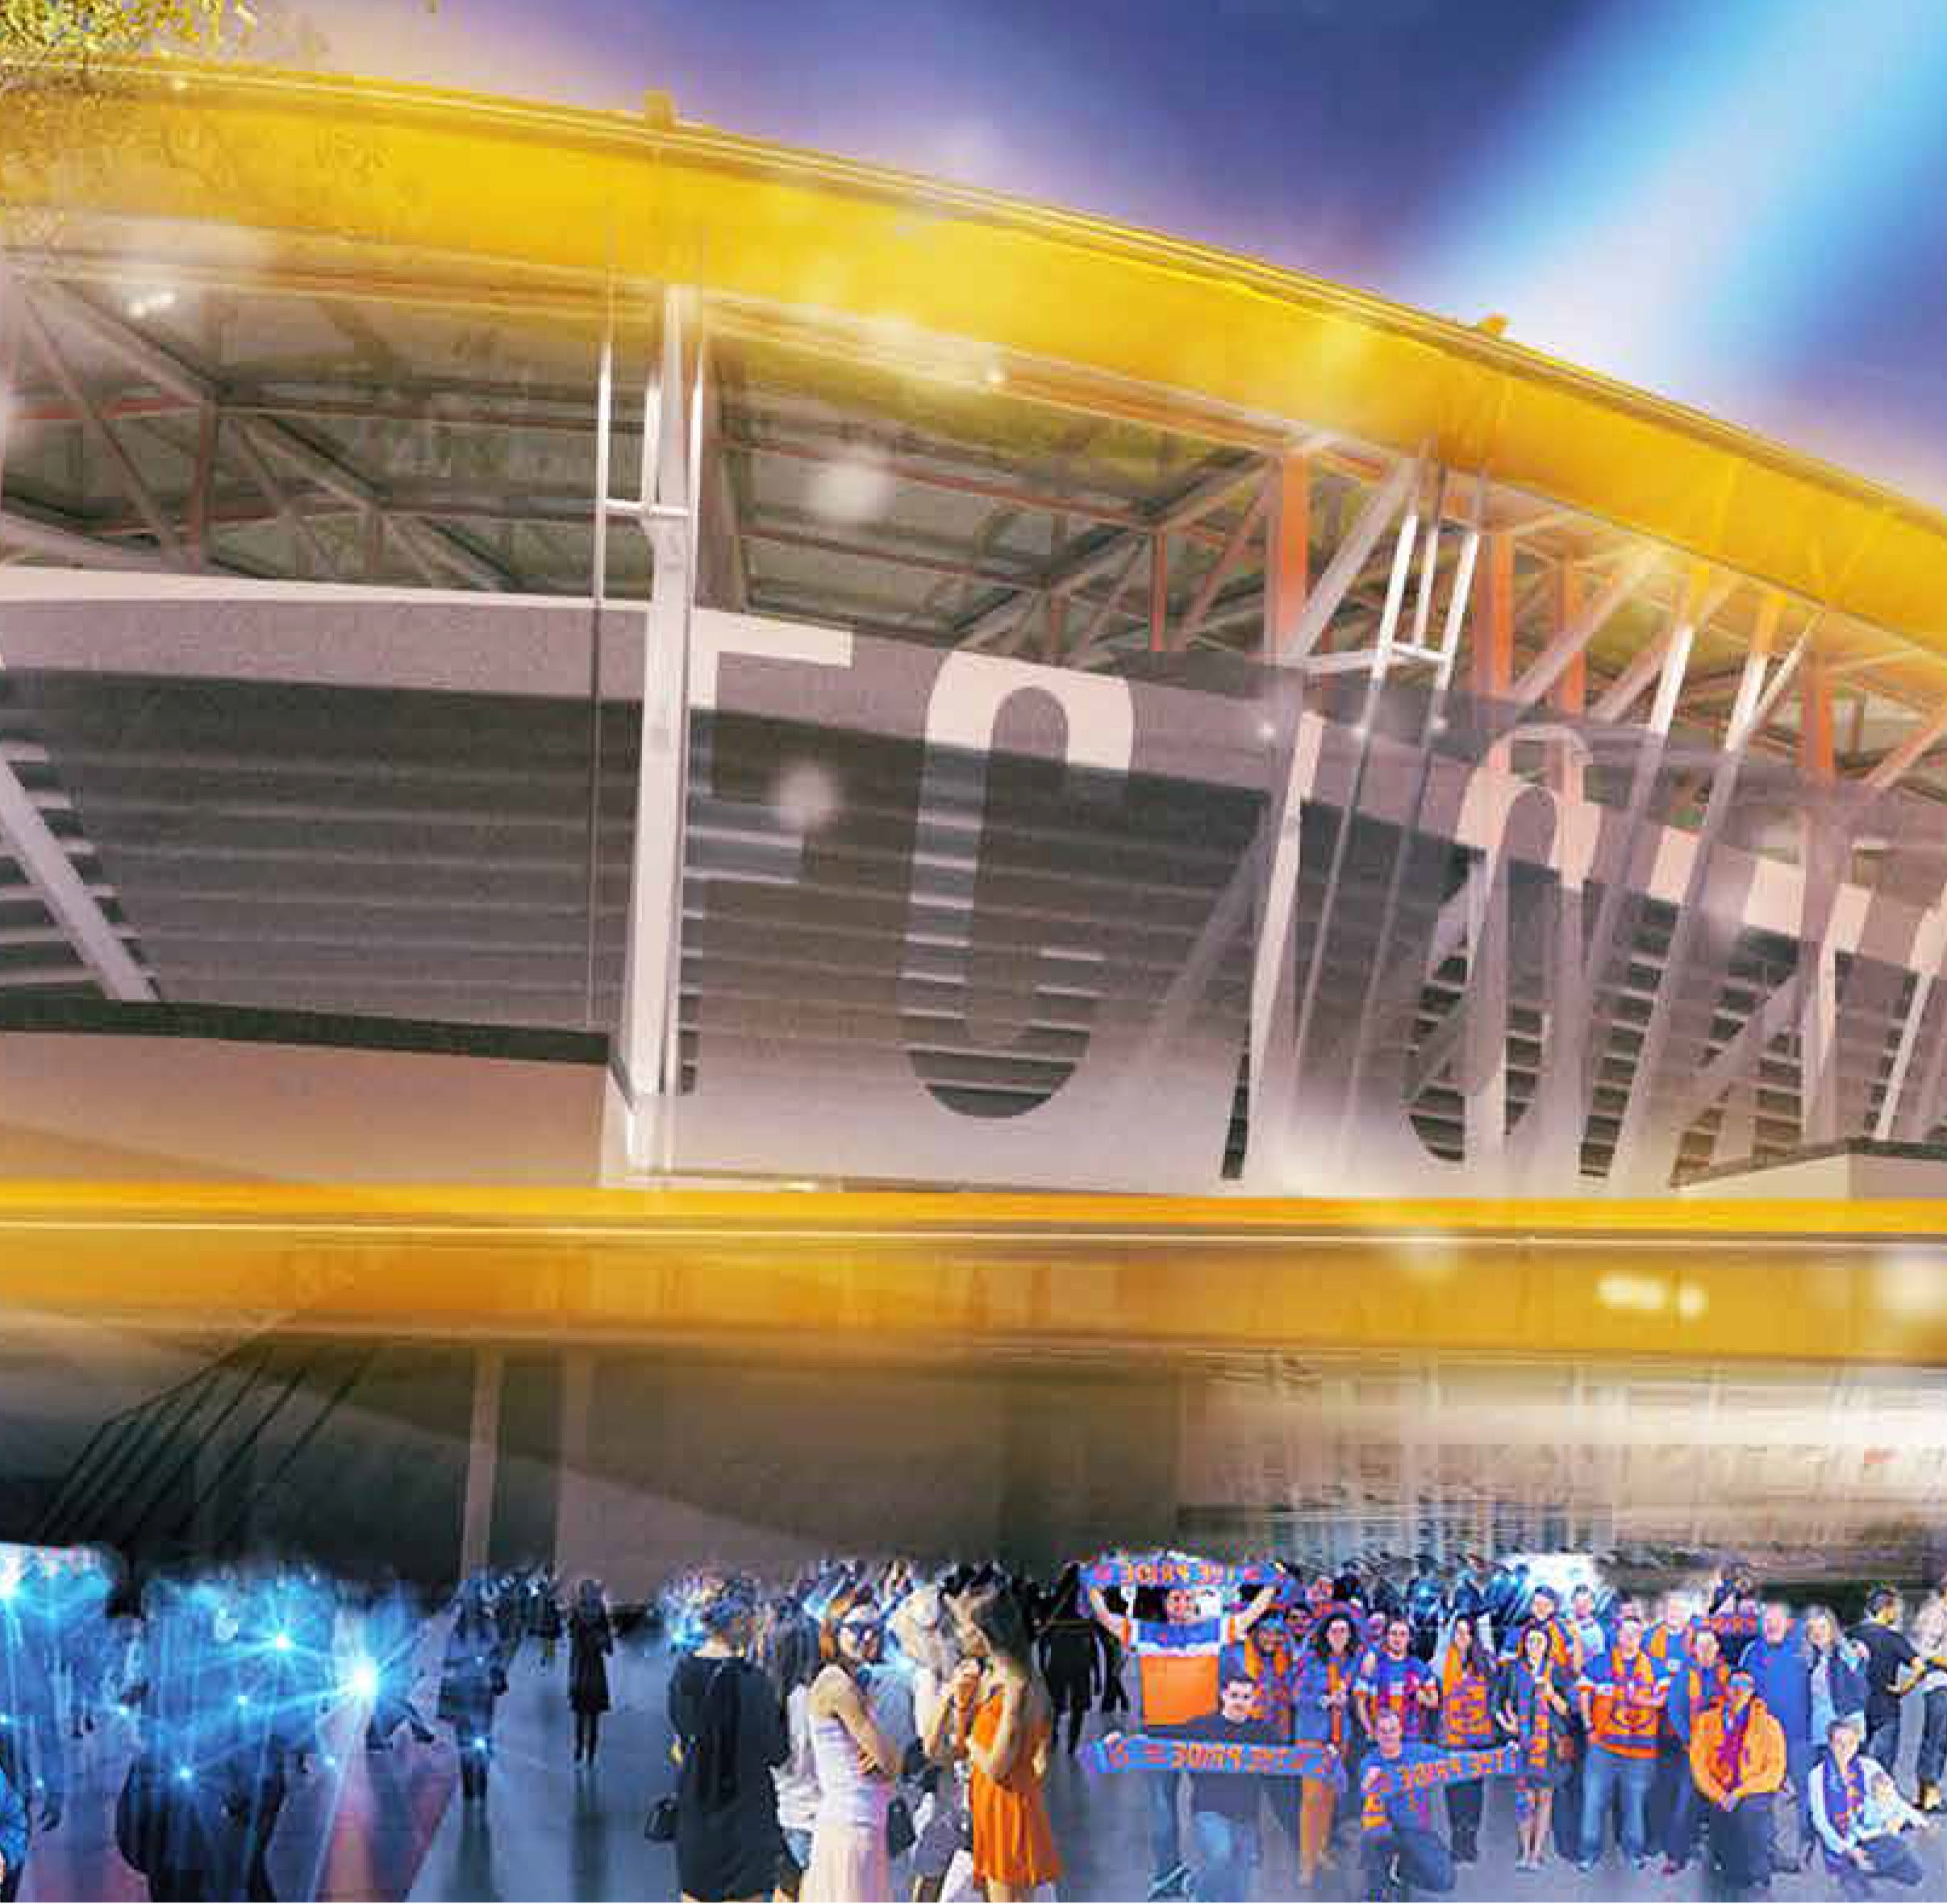 Evening view of the current rendering. Previous rendering showed the entire stadium wrapped in material that would glow. That's been amended to the ribbons of color shown here.